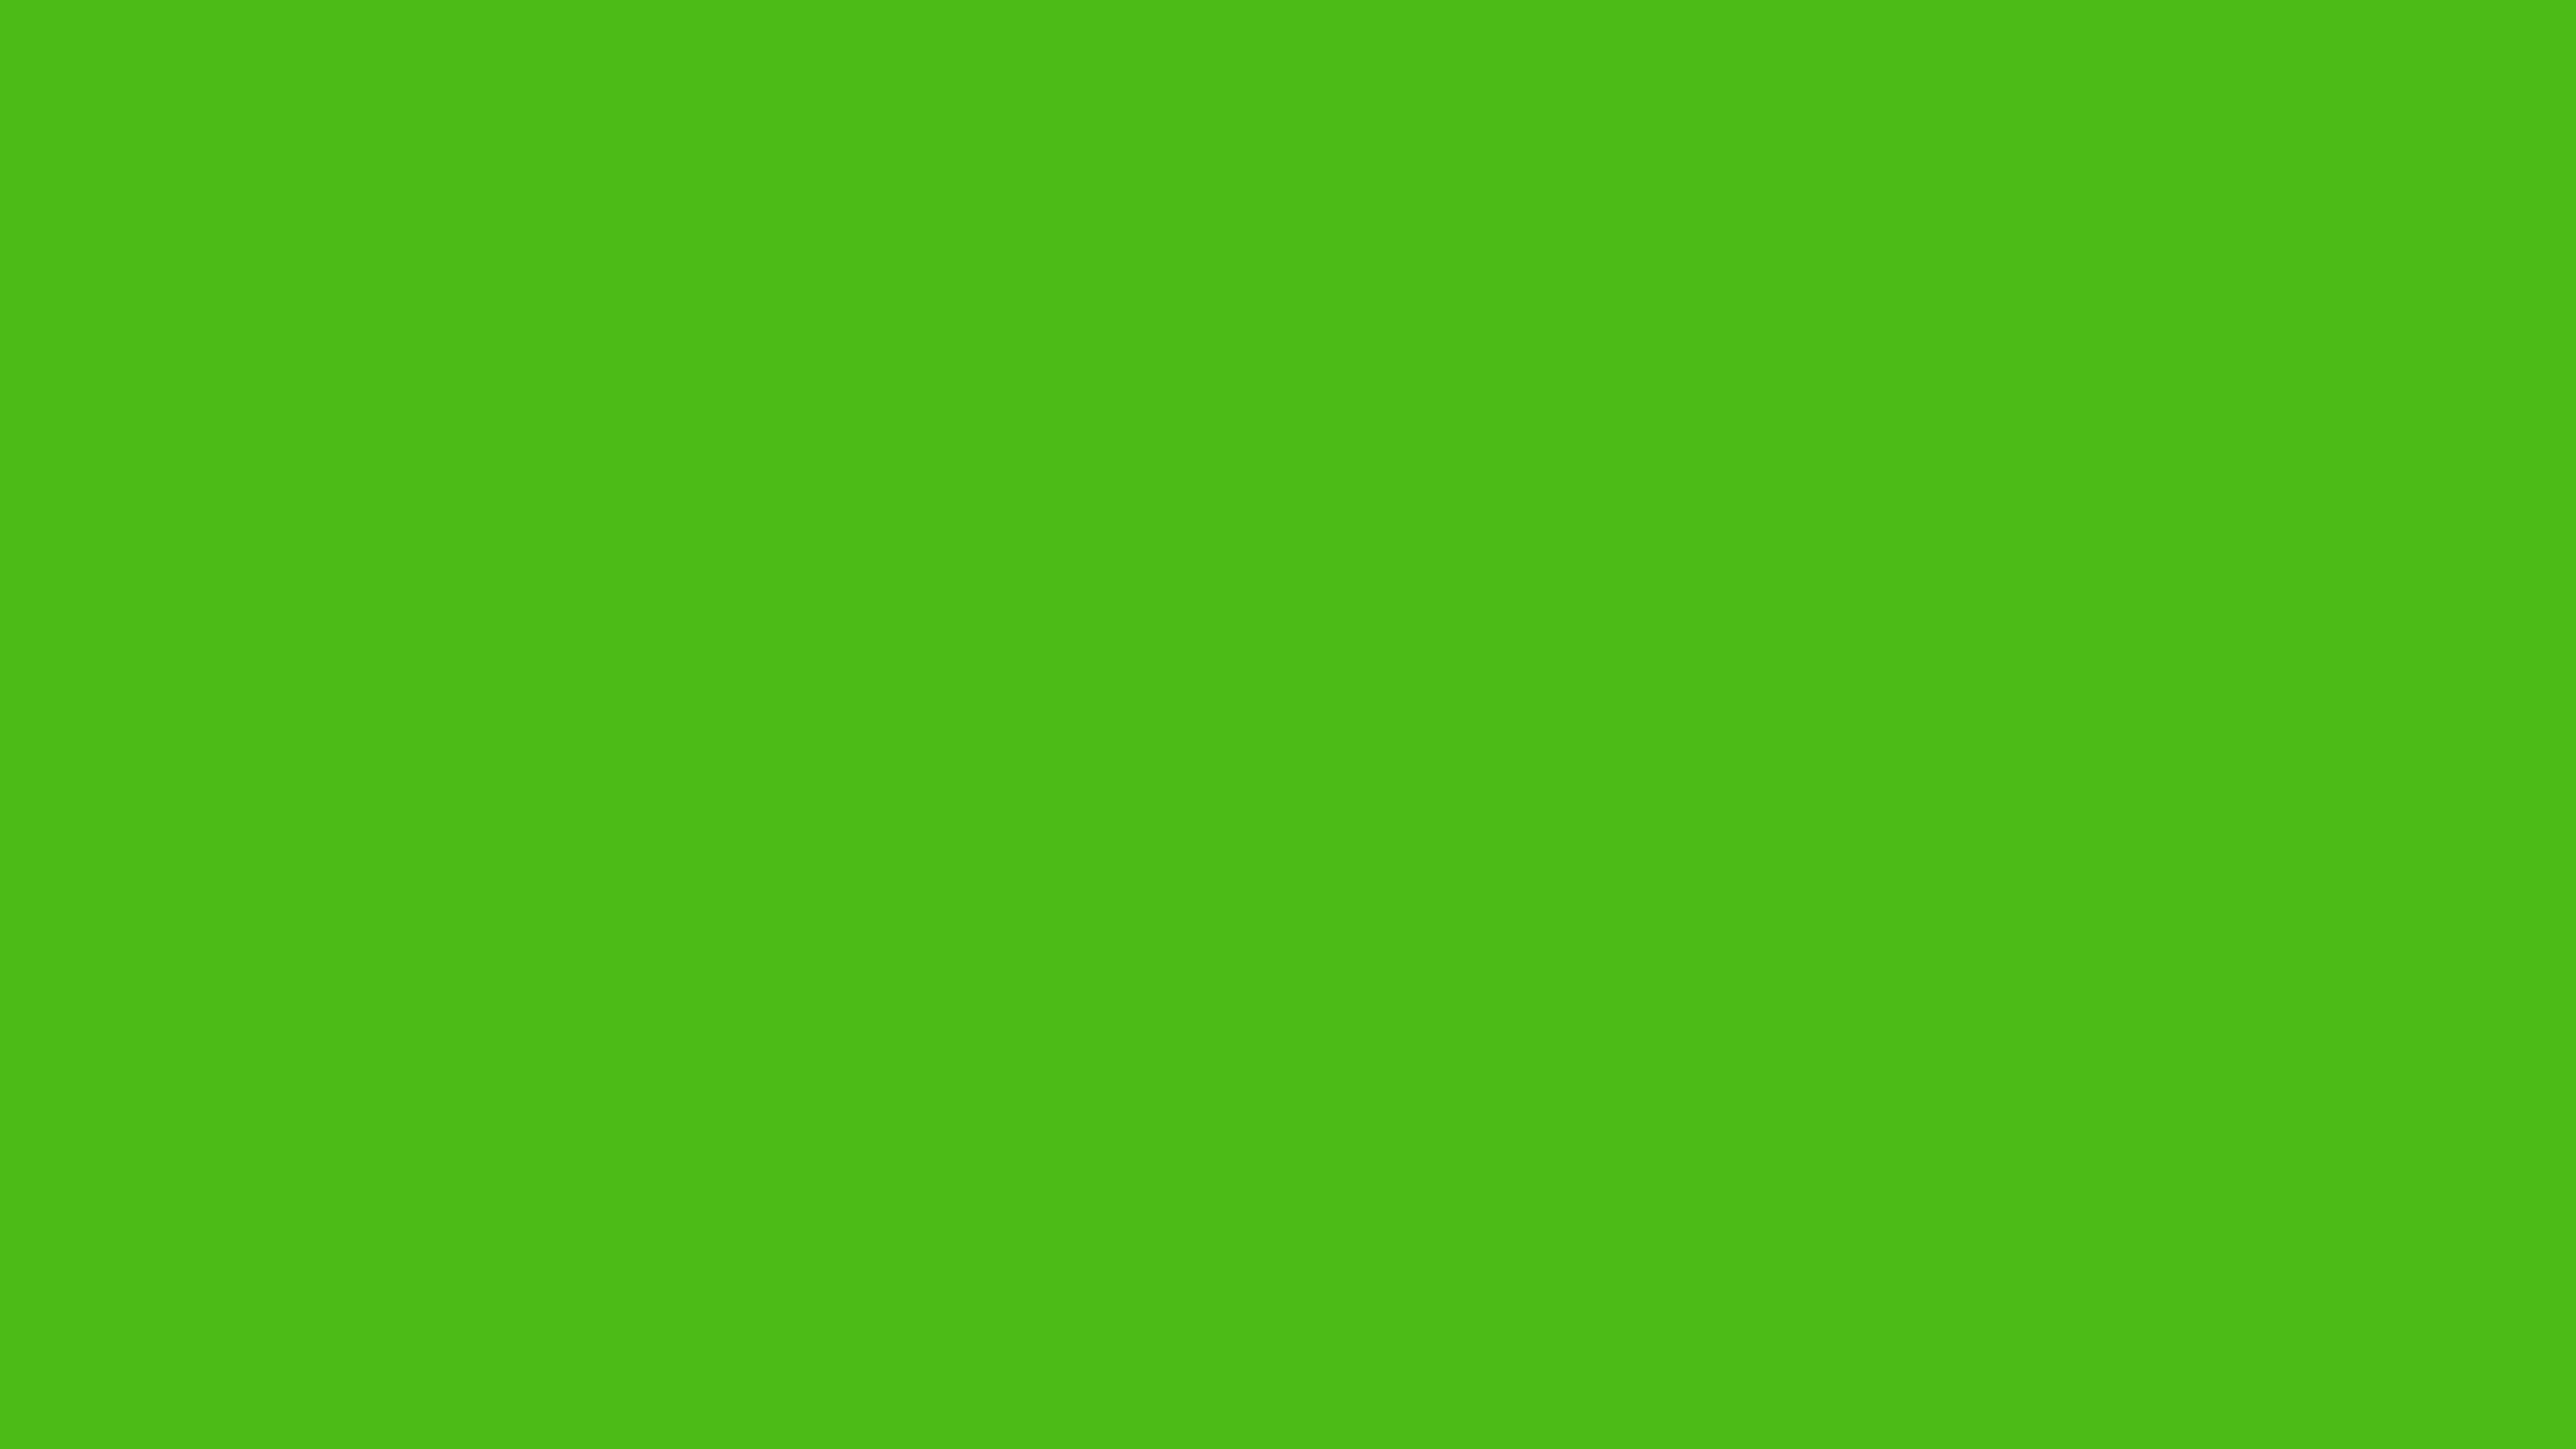 4096x2304 Kelly Green Solid Color Background